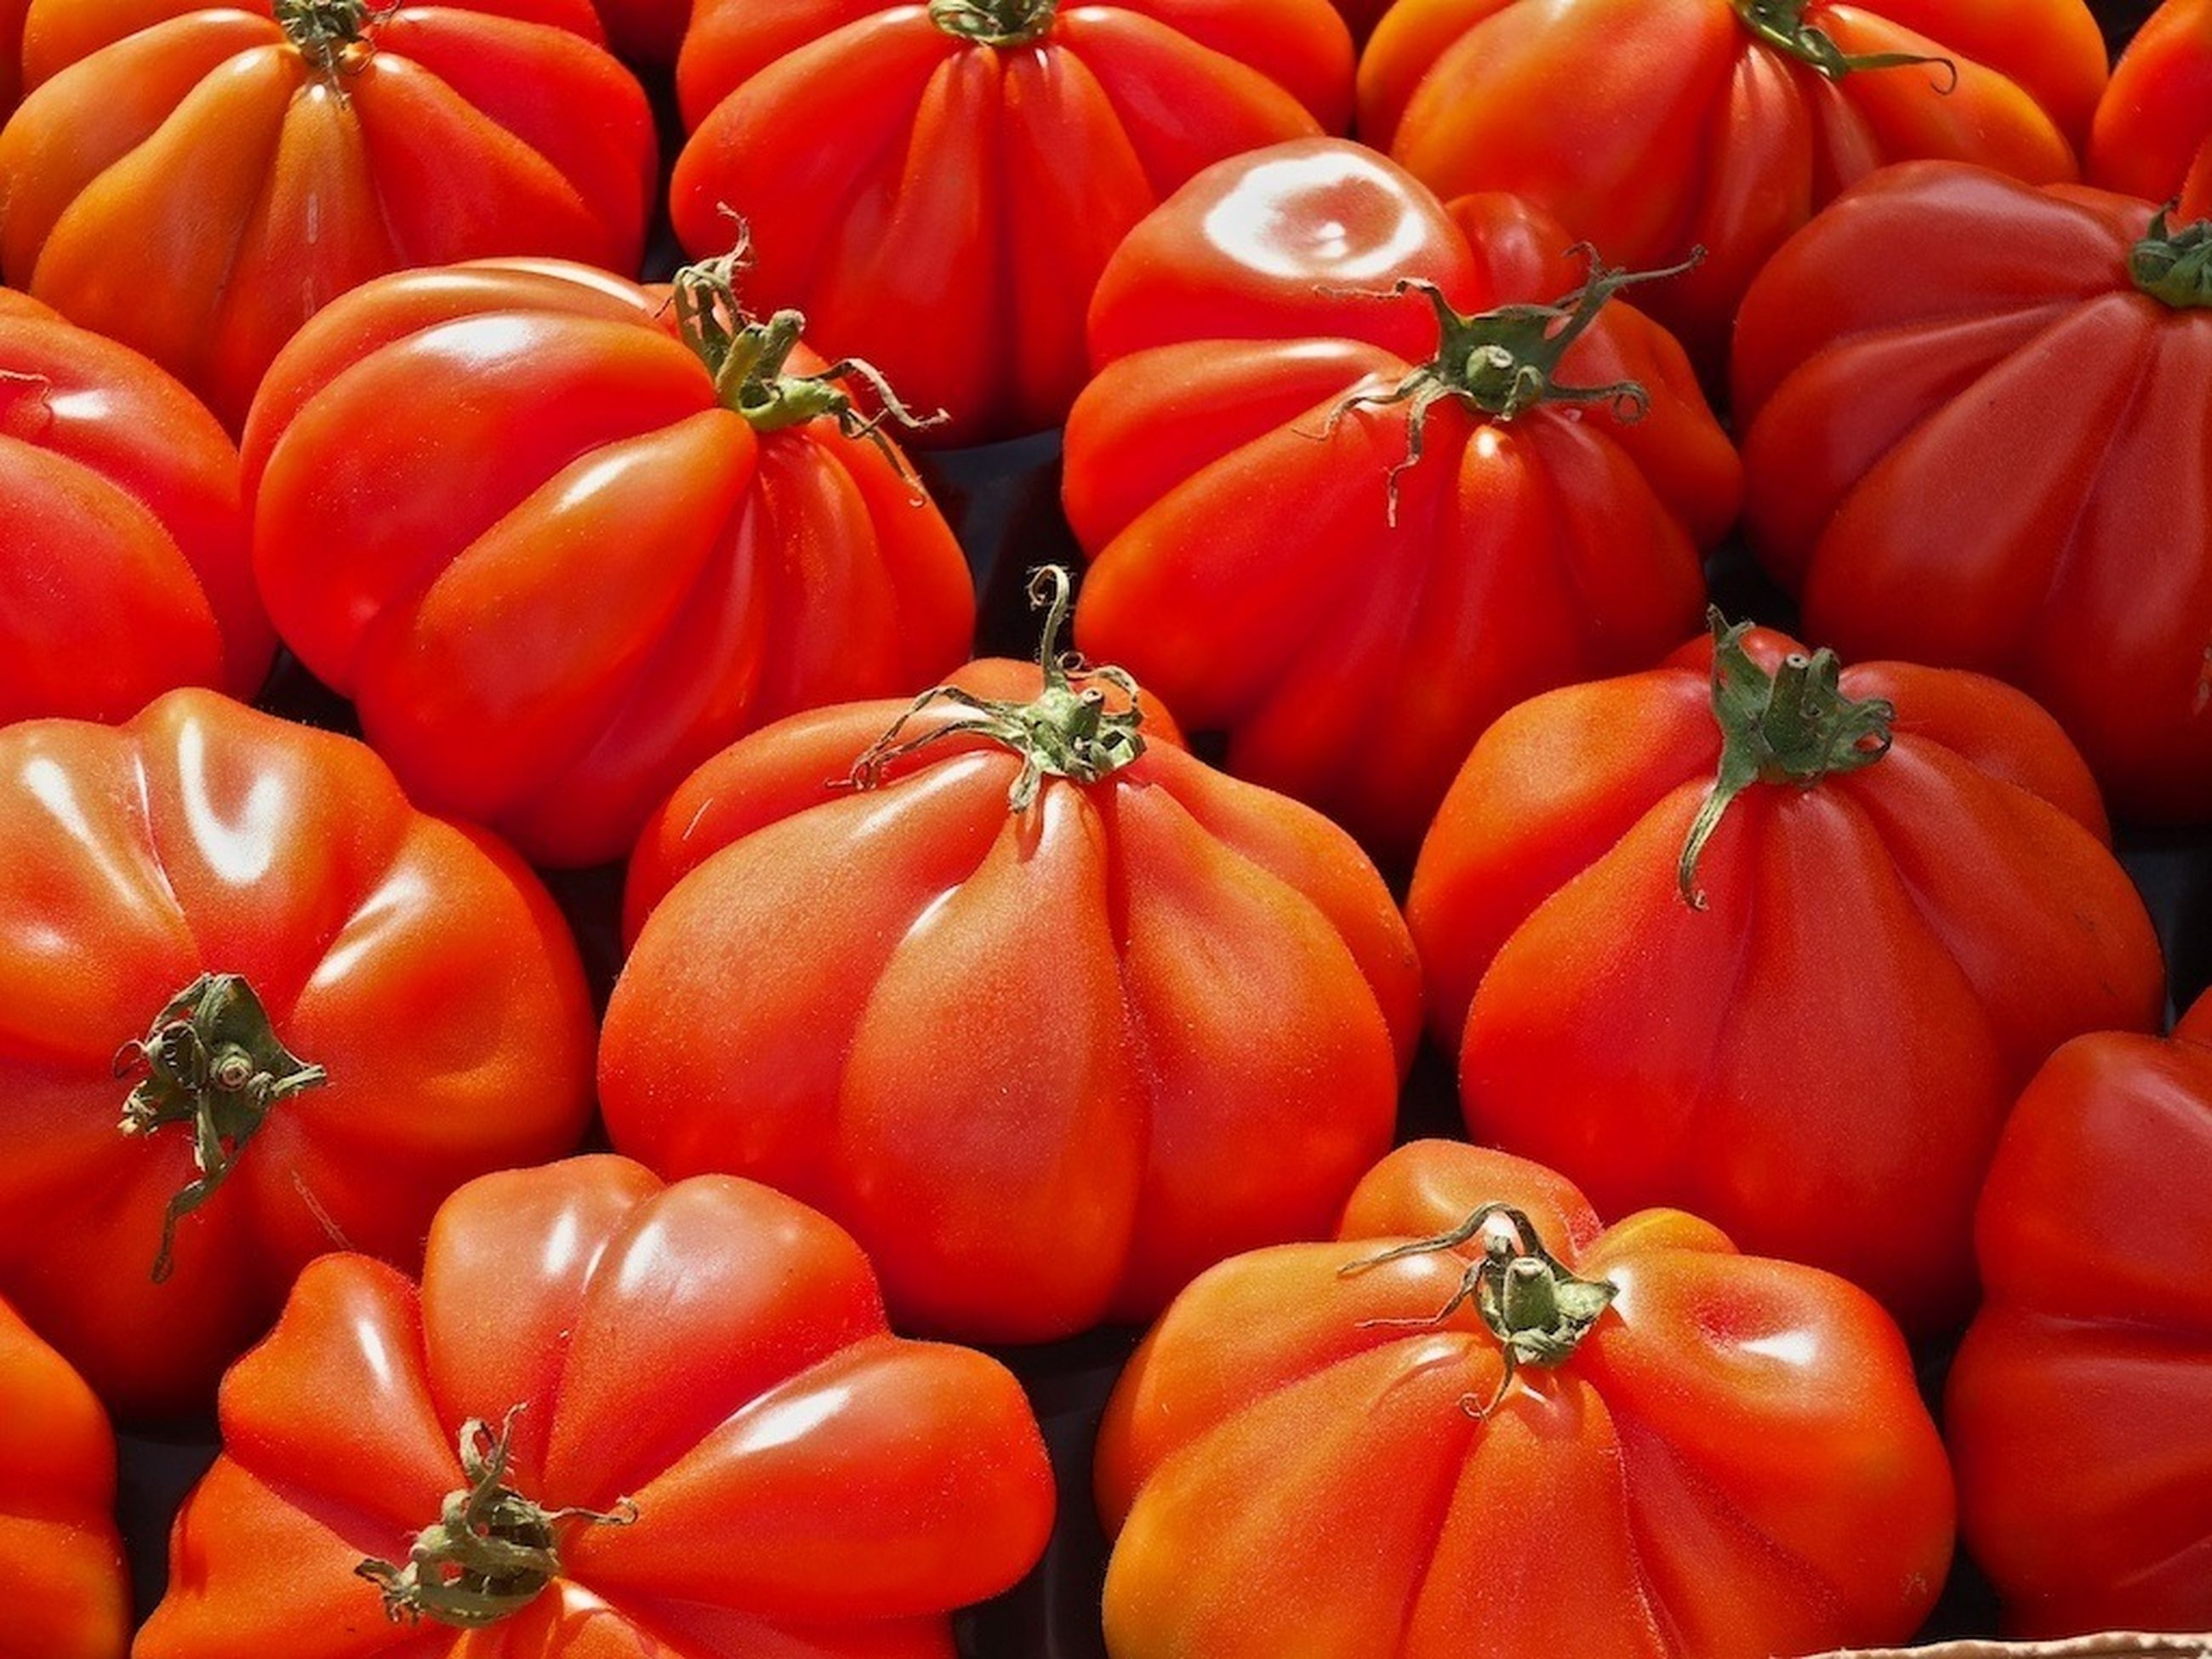 red, full frame, freshness, food and drink, backgrounds, vegetable, healthy eating, abundance, orange color, food, large group of objects, for sale, tomato, market, pumpkin, market stall, retail, still life, no people, close-up